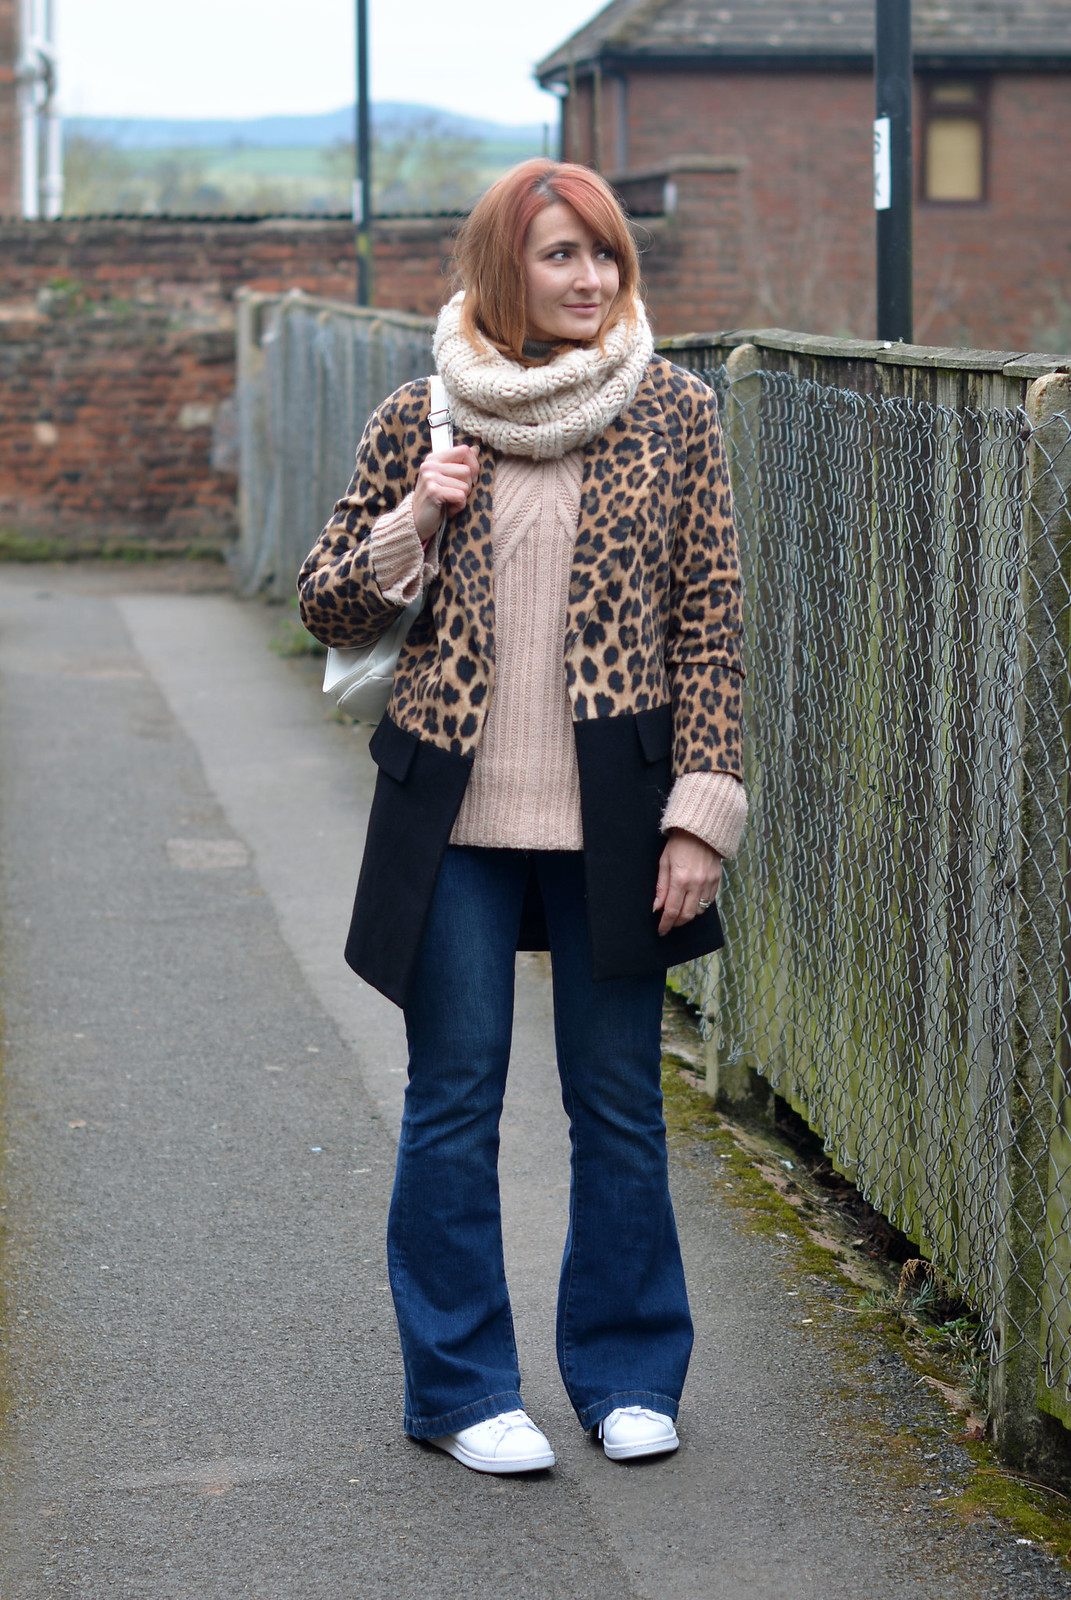 Winter style: Two tone leopard/black coat, flared jeans, white Adidas Stan Smiths | Not Dressed As Lamb